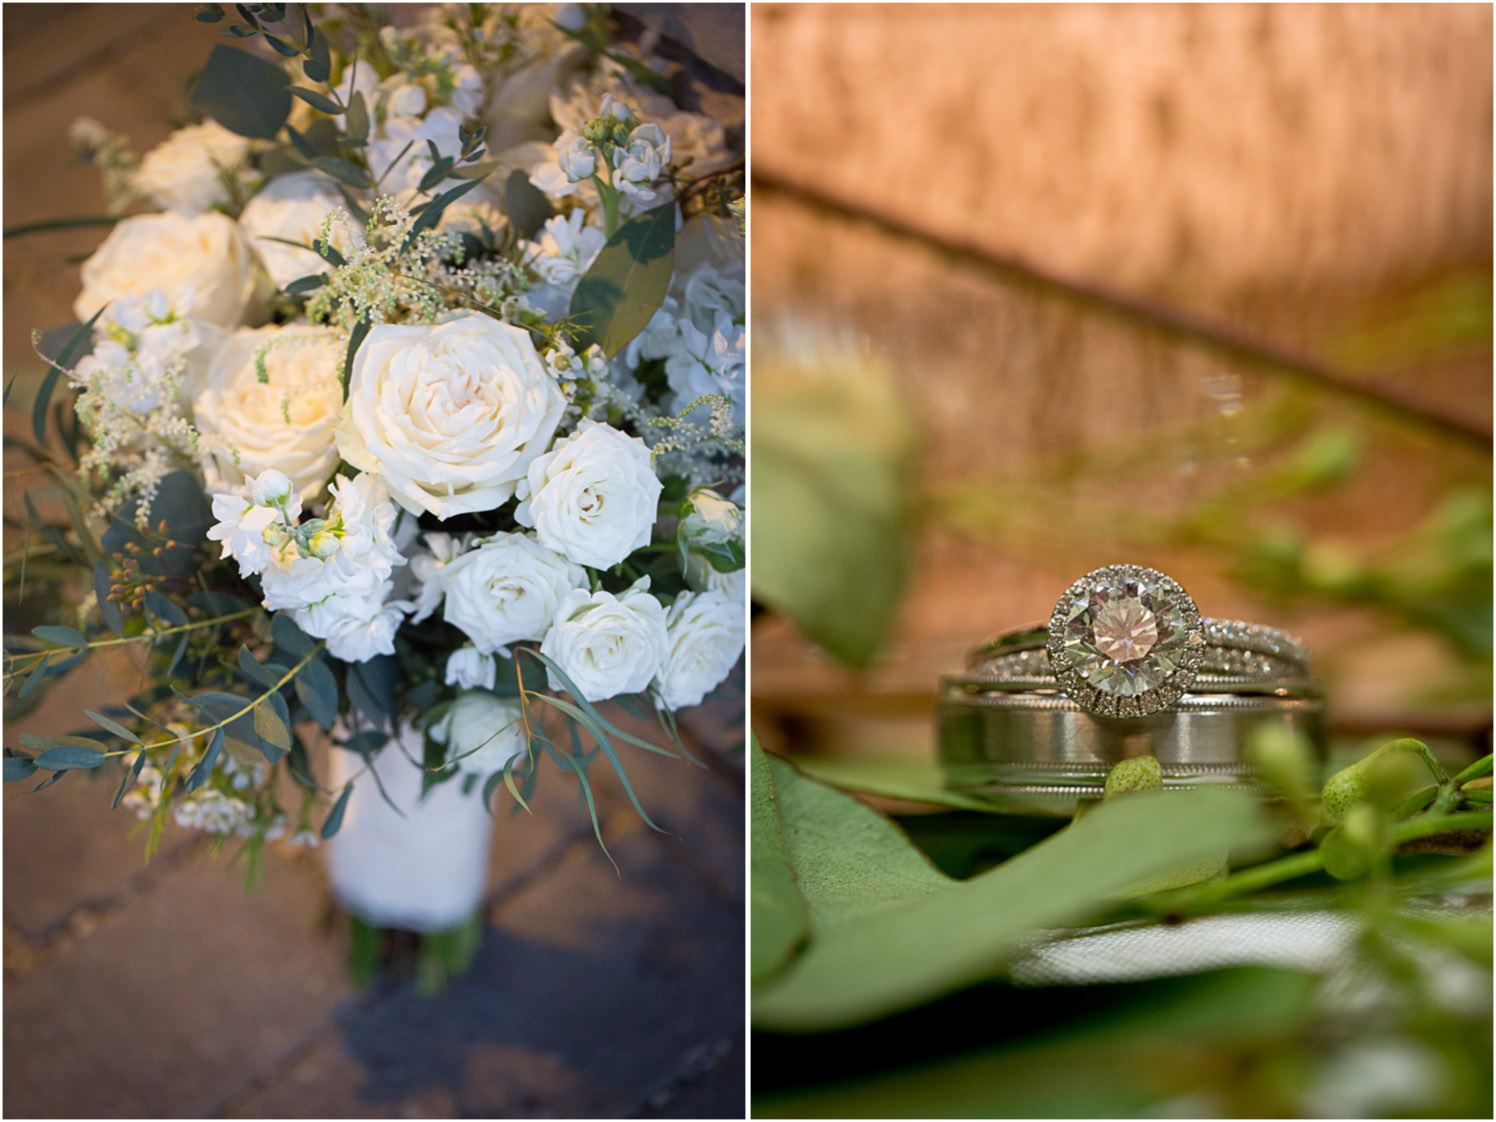 19-wedding-reception-details-winter-bridal-boquet-white-roses-greenery-rings-mahonen-photography.jpg